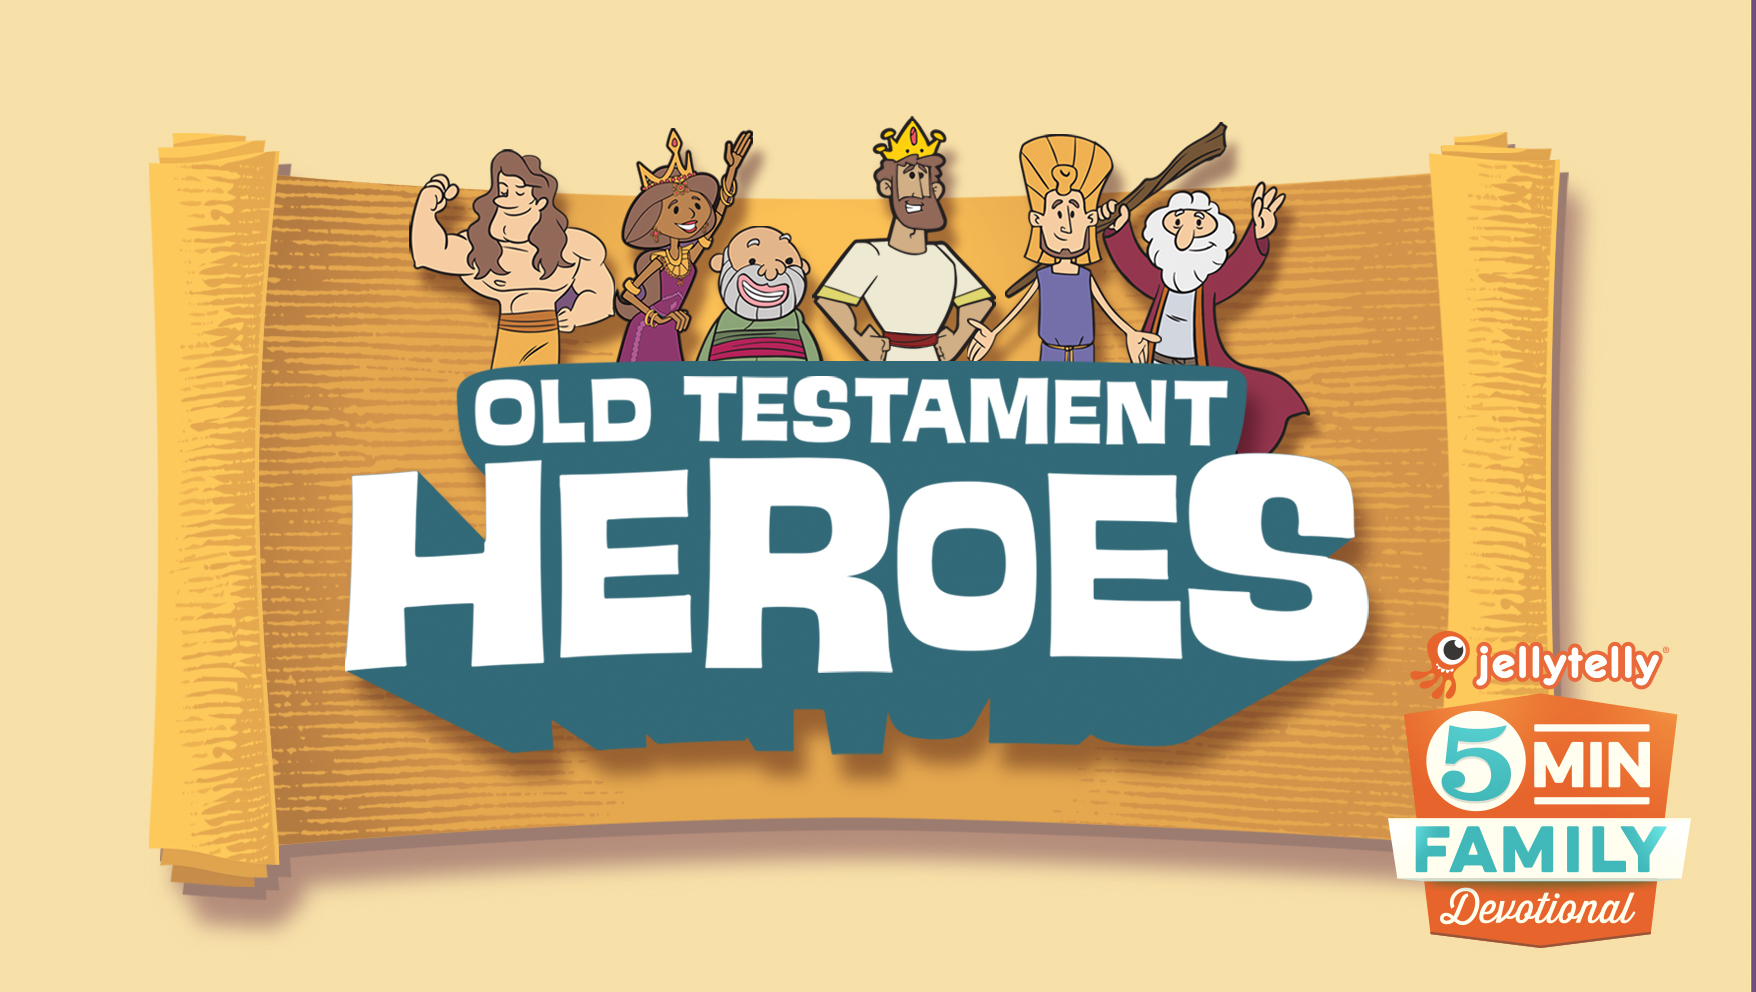 Old Testament Heroes - 5 Minute Family Devotional Plan